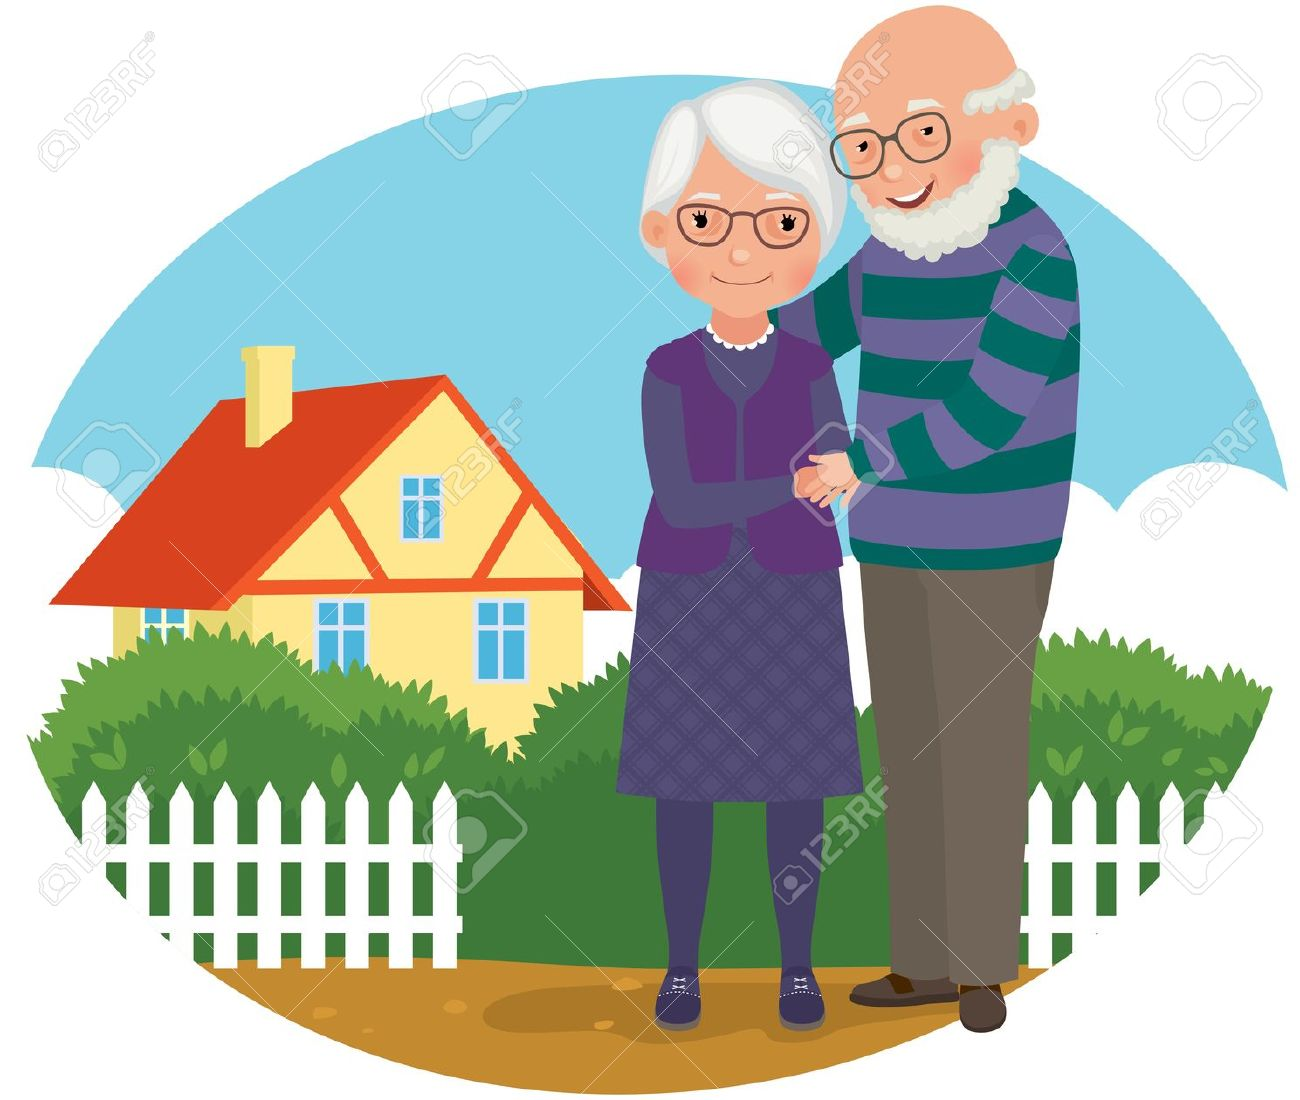 Old age home clipart transparent stock Old age home clipart 2 » Clipart Station transparent stock